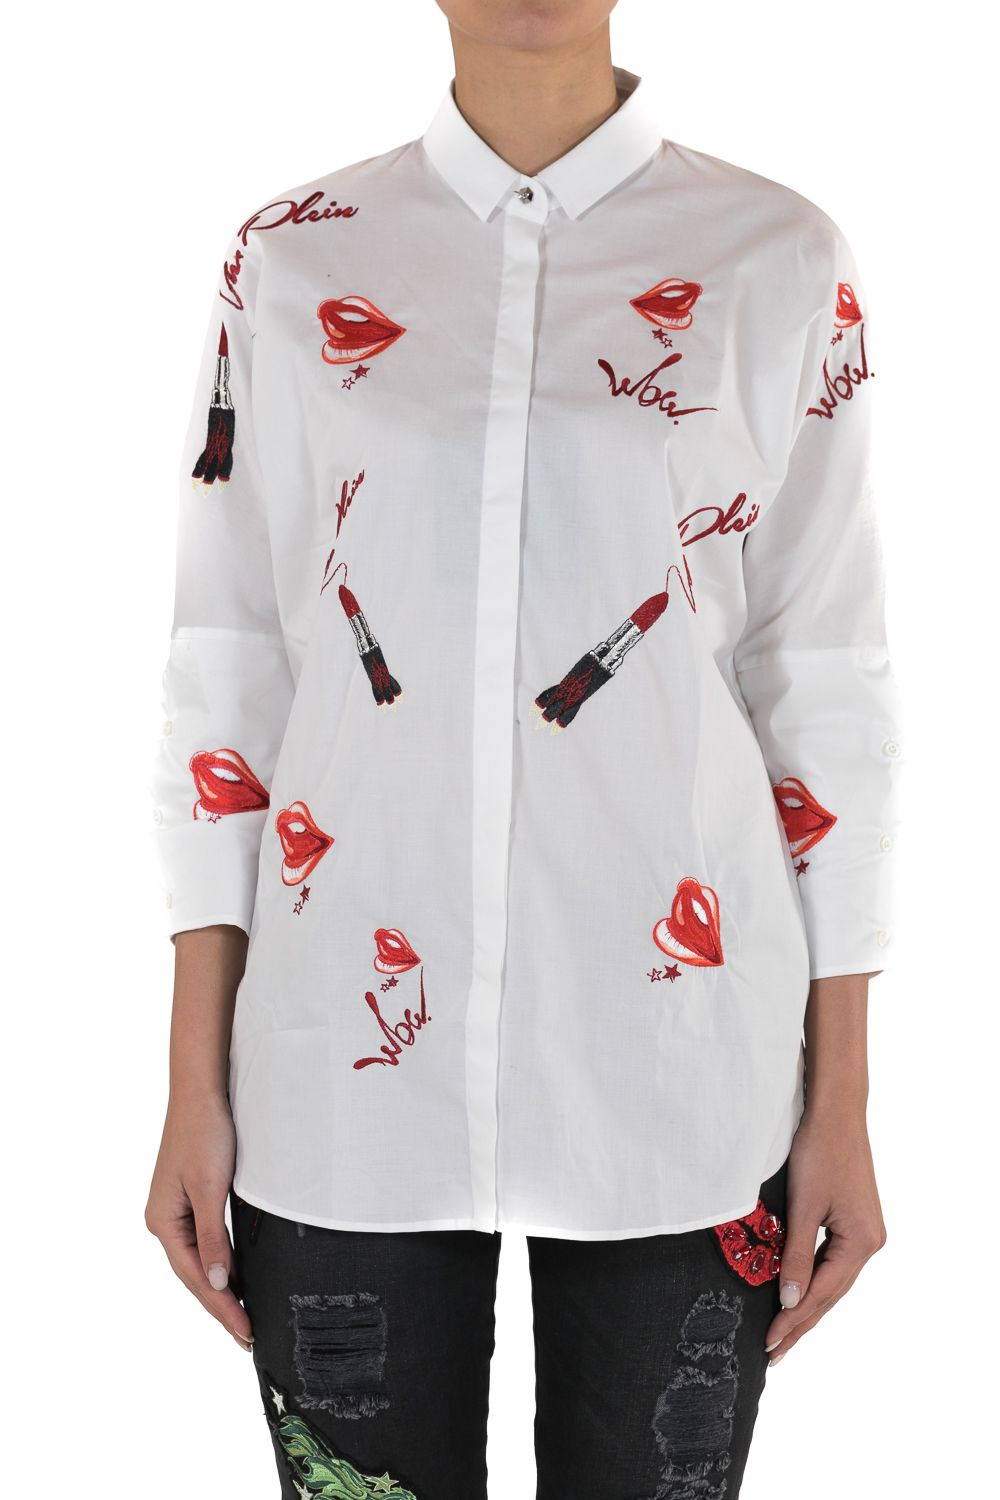 Philipp Plein Aries Shirt